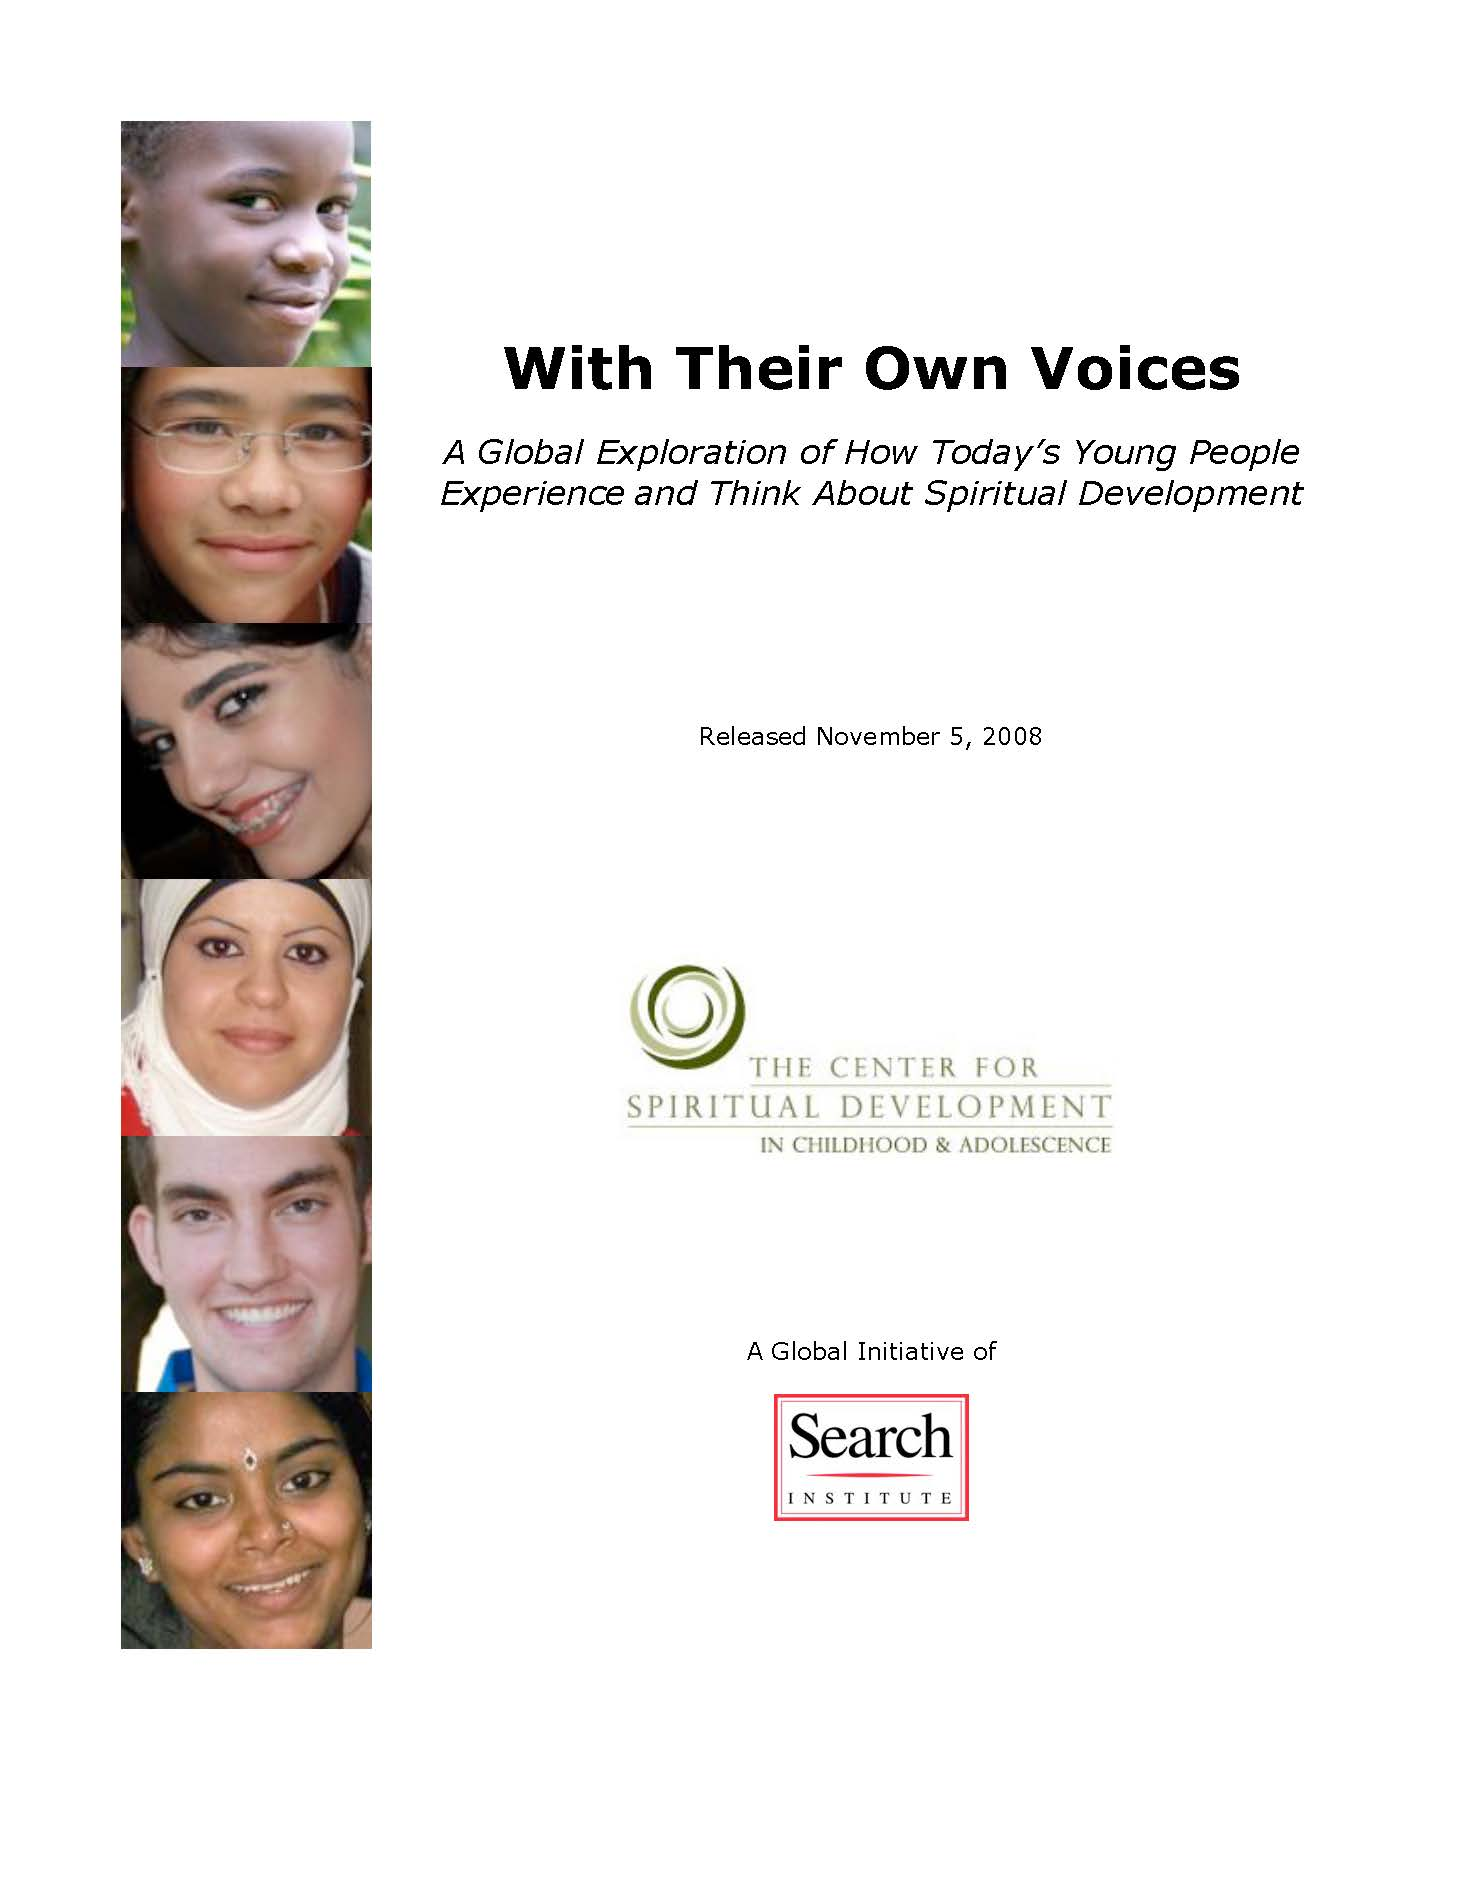 Search Institute WIth Their Own Voices Report Preview